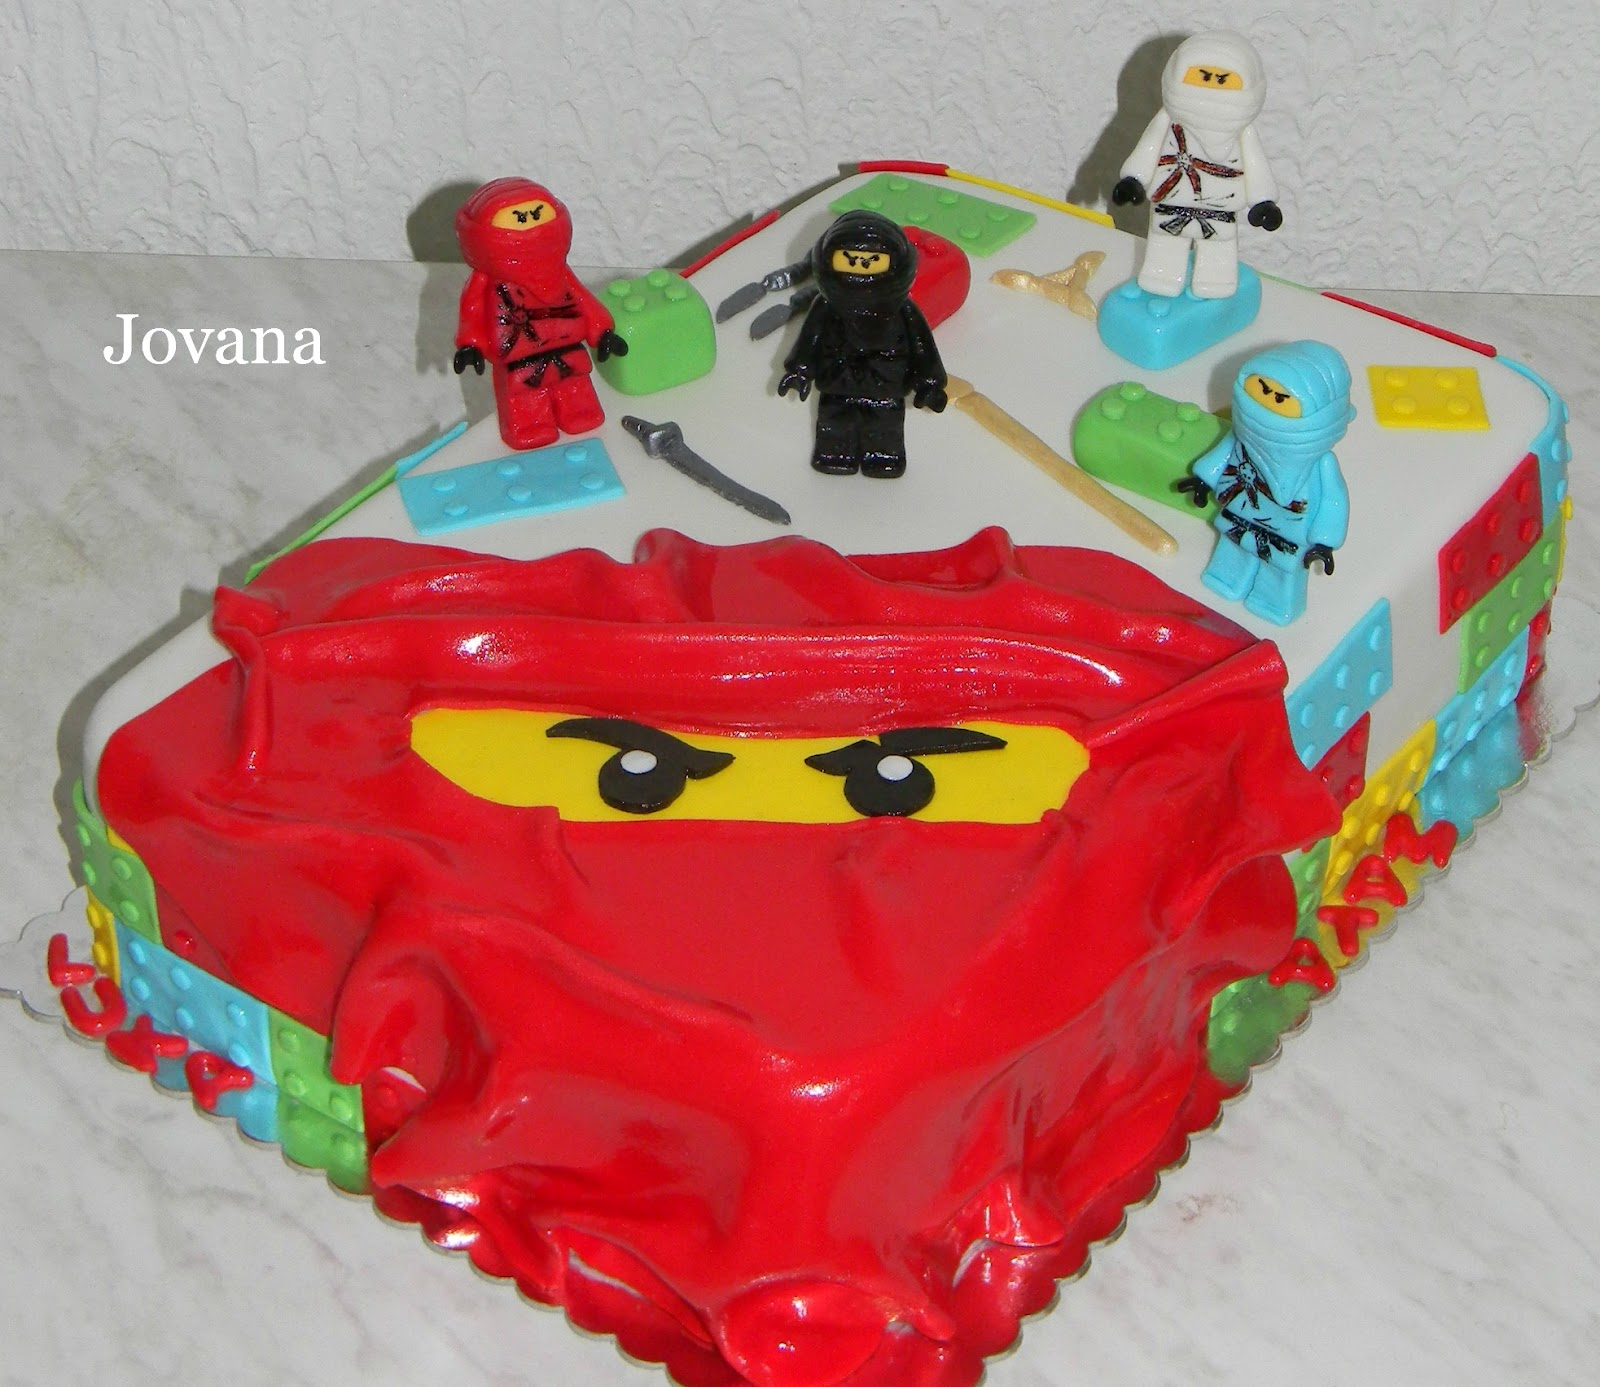 Ninjago Cake Ajilbabcom Cake Ideas and Designs